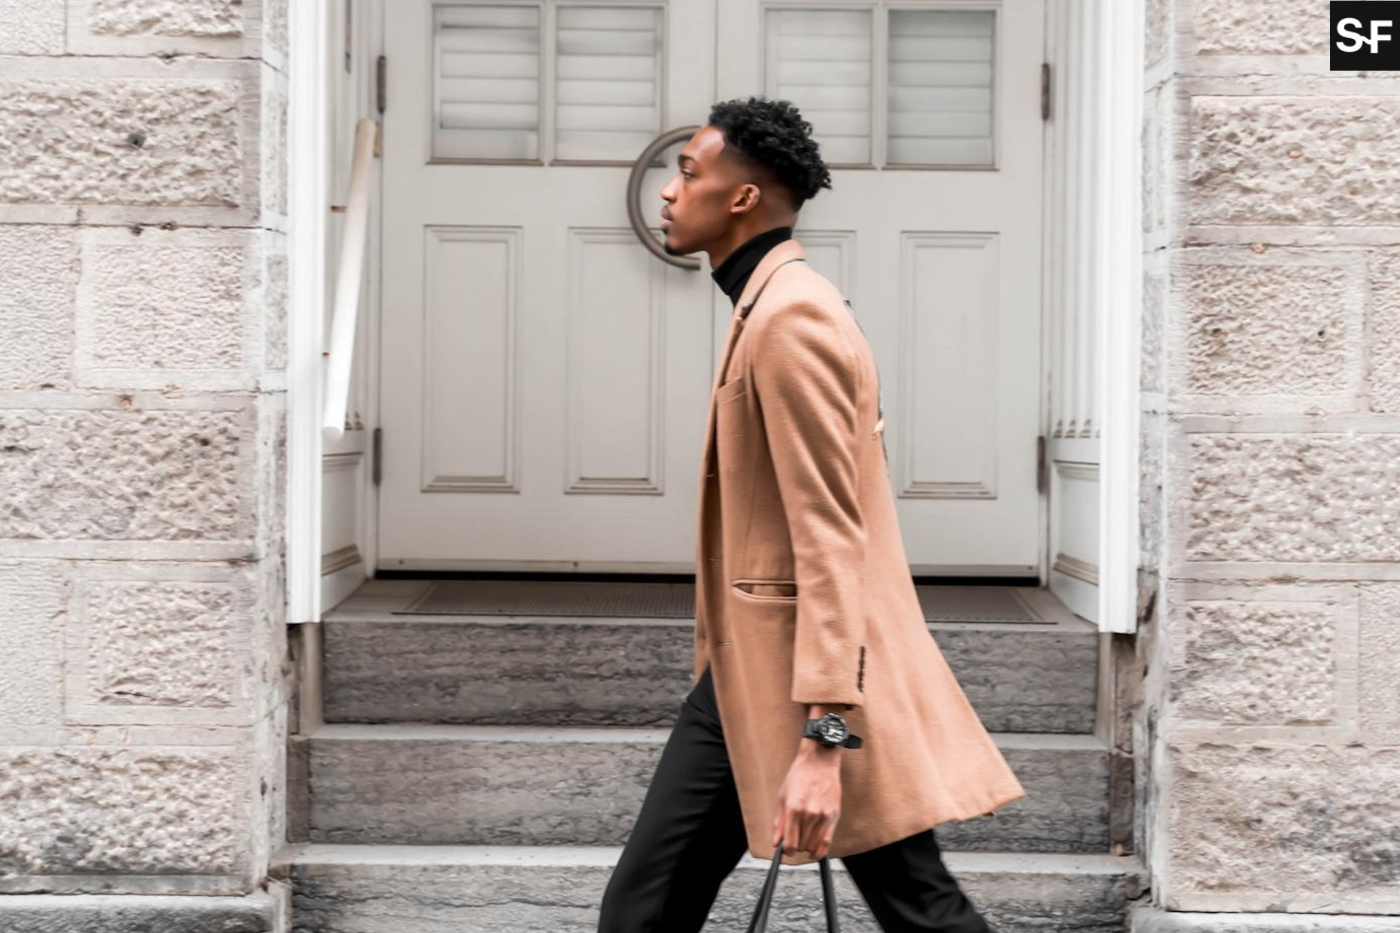 mens-style-how-to-dress-for-your-body-type